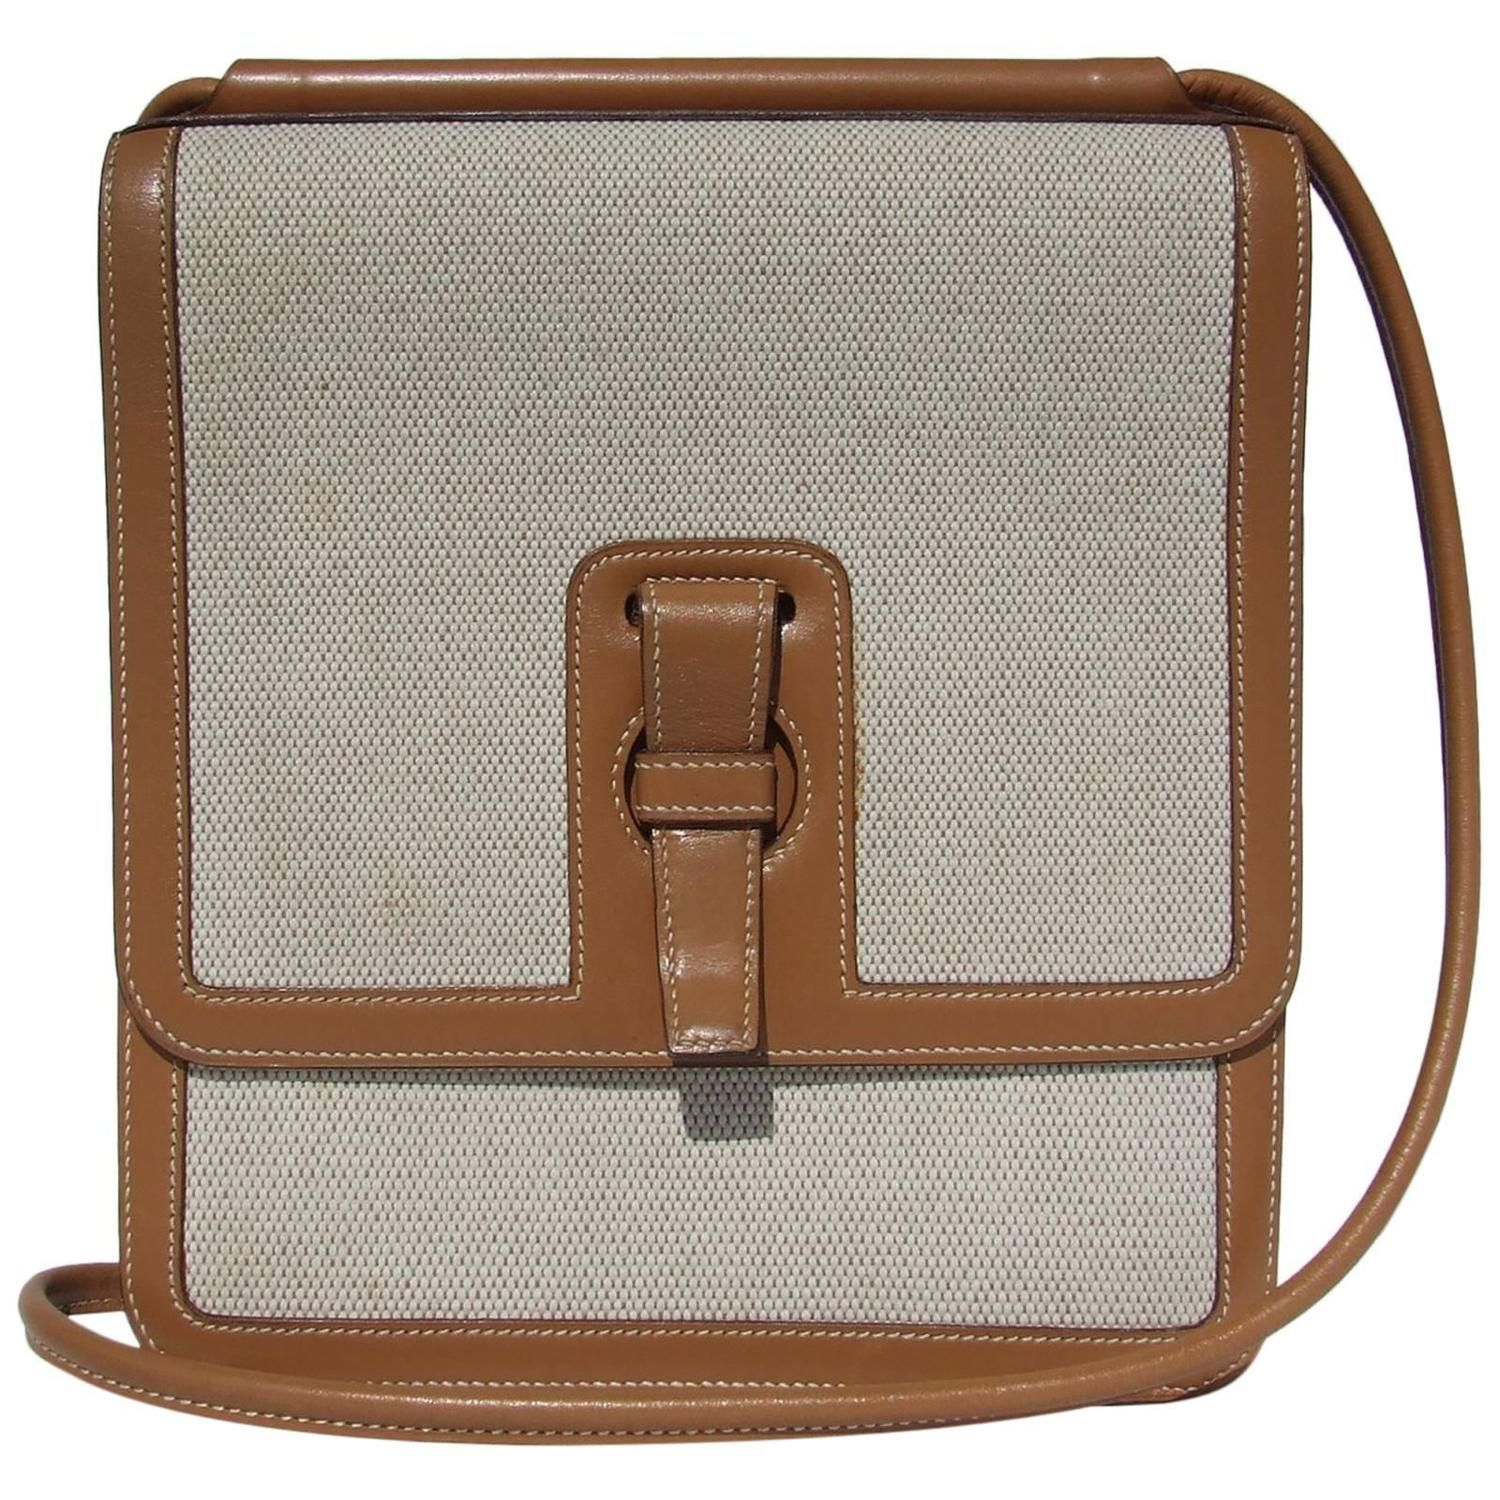 Hermes Toile and Leather Cross Body Bag Canvas RARE For Sale at 1stdibs 12c30069b6